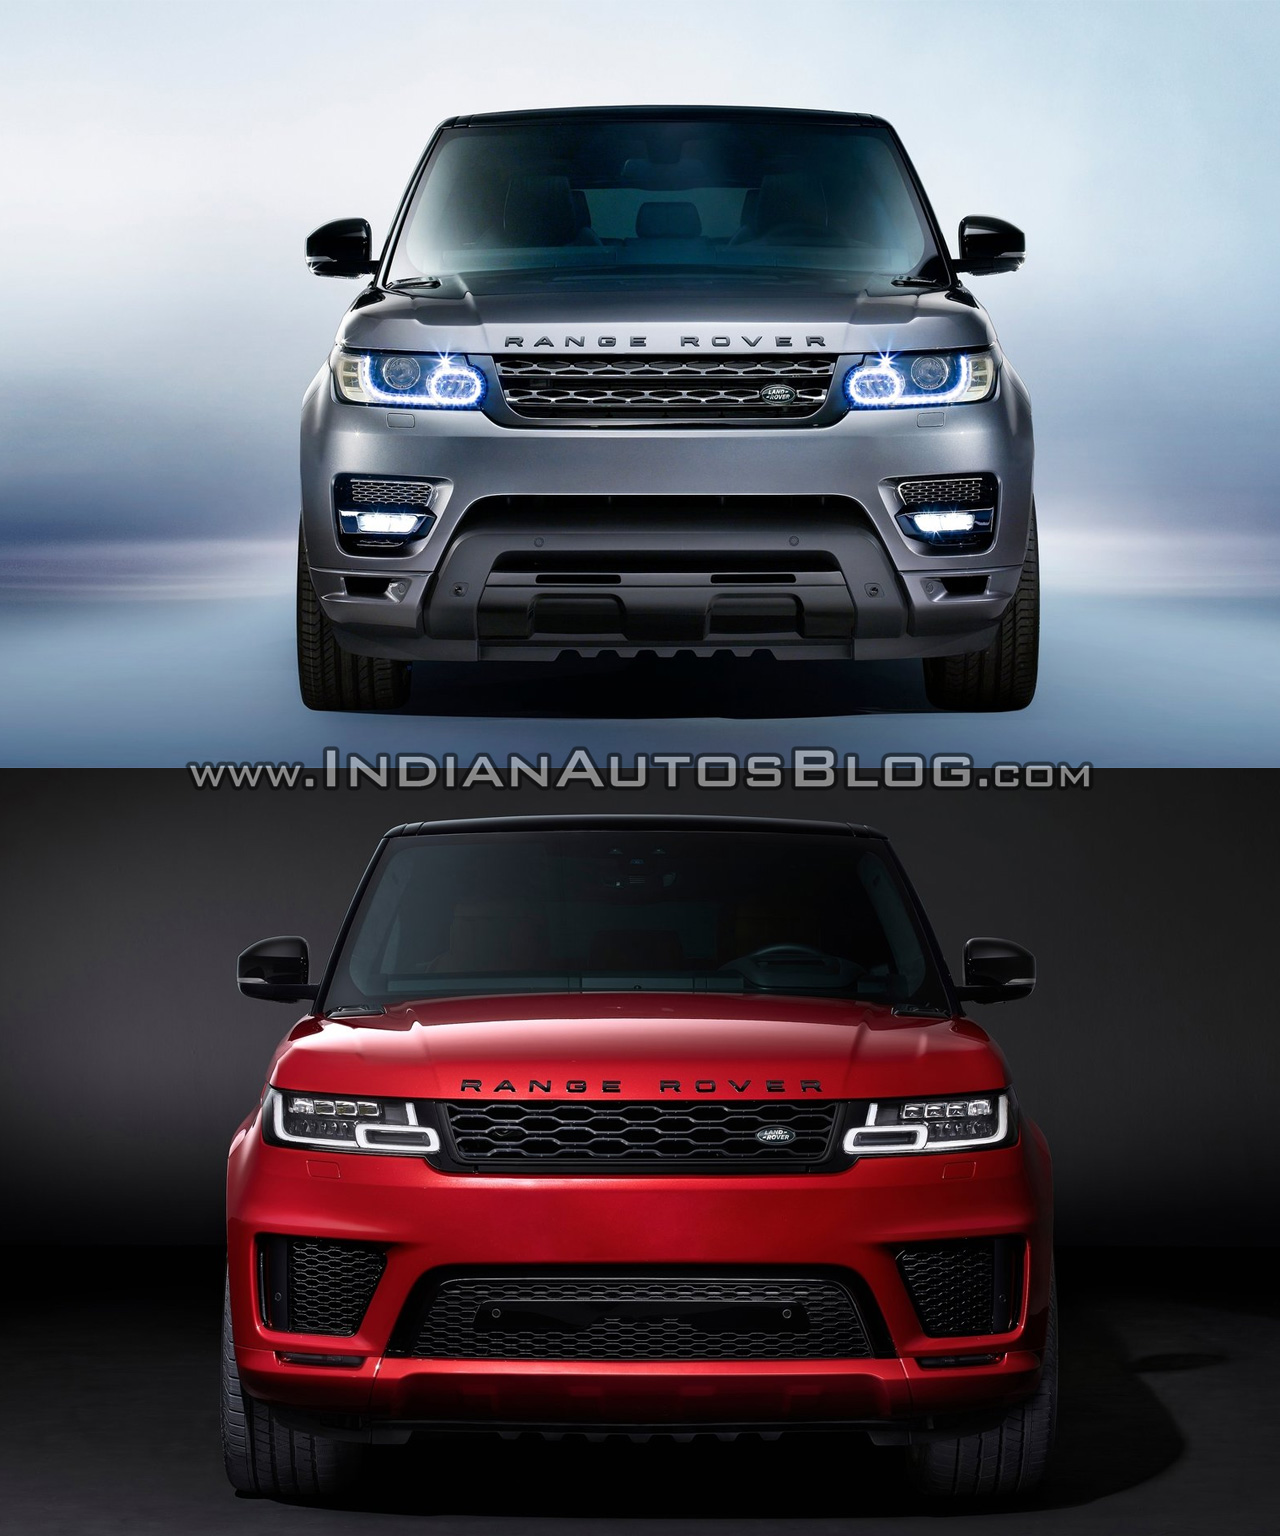 2018 range rover sport vs 2014 range rover sport old vs new. Black Bedroom Furniture Sets. Home Design Ideas